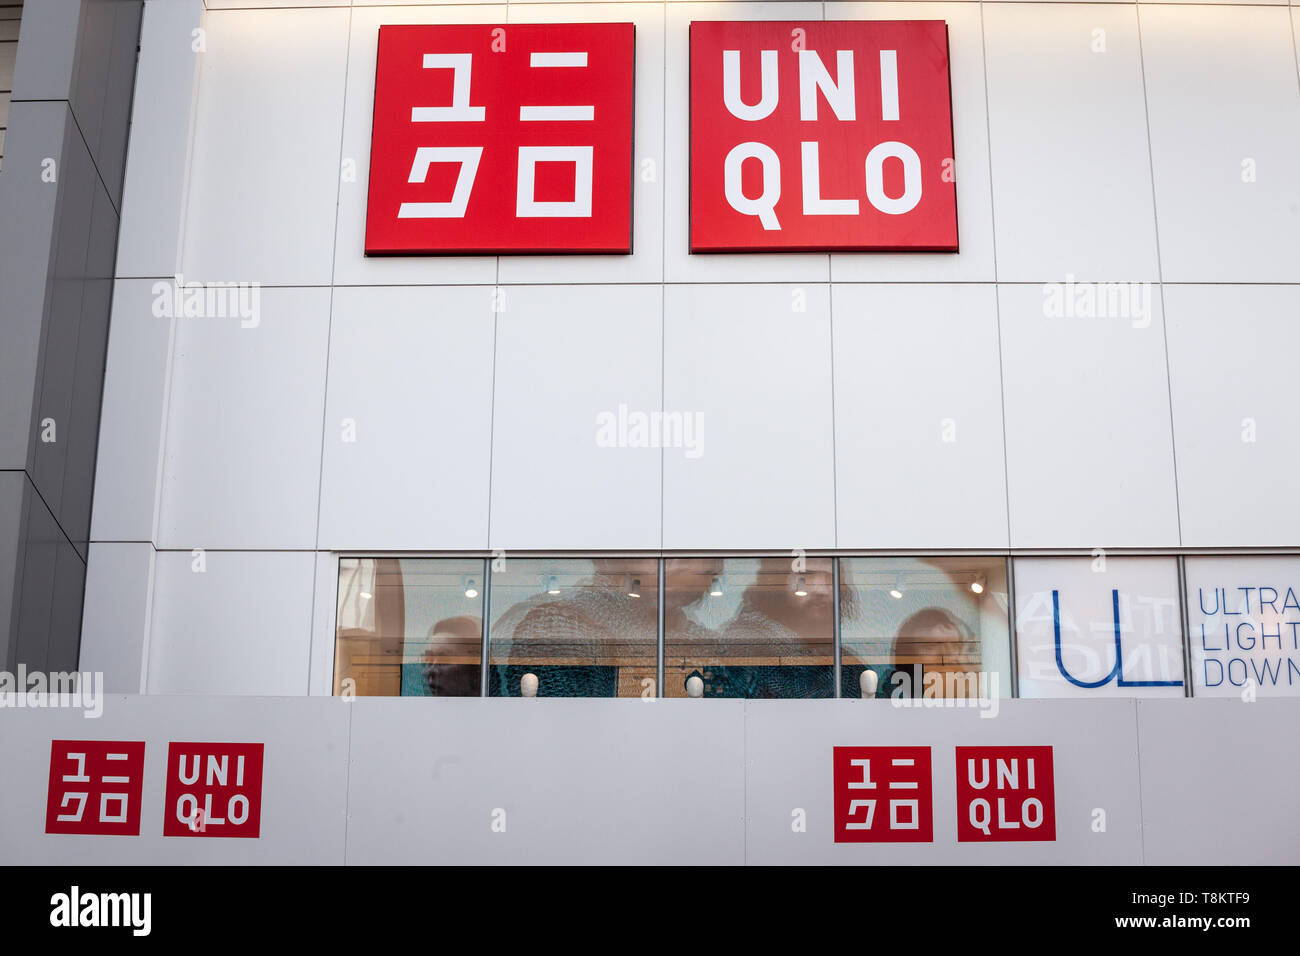 24af33b14 Uniqlo Sign Logo Imágenes De Stock & Uniqlo Sign Logo Fotos De Stock ...